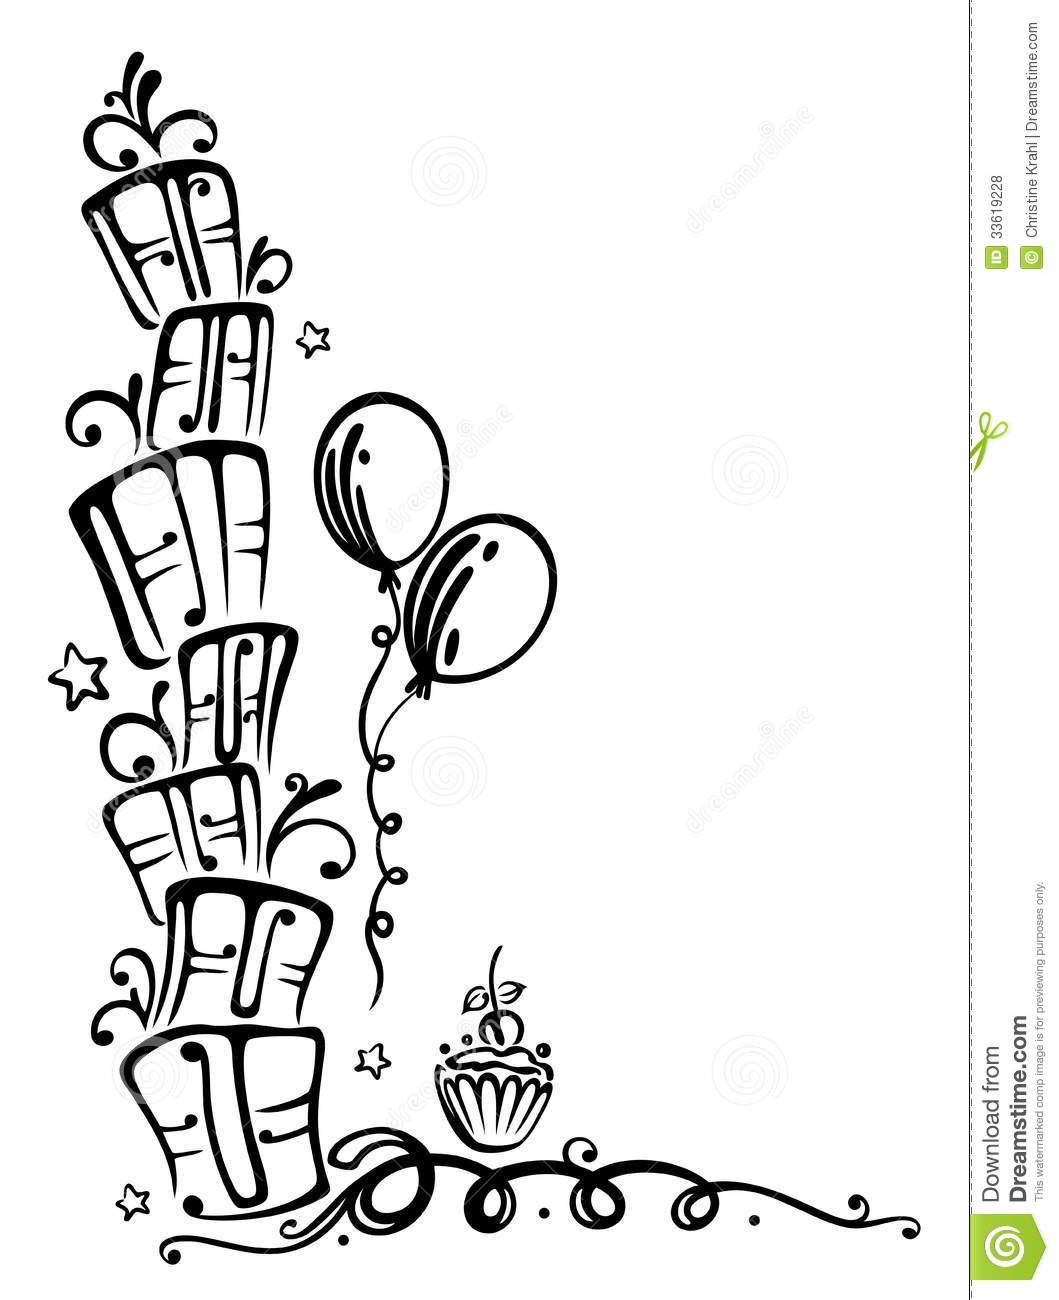 Birthday Ts Illustration Royalty Free Stock Photos